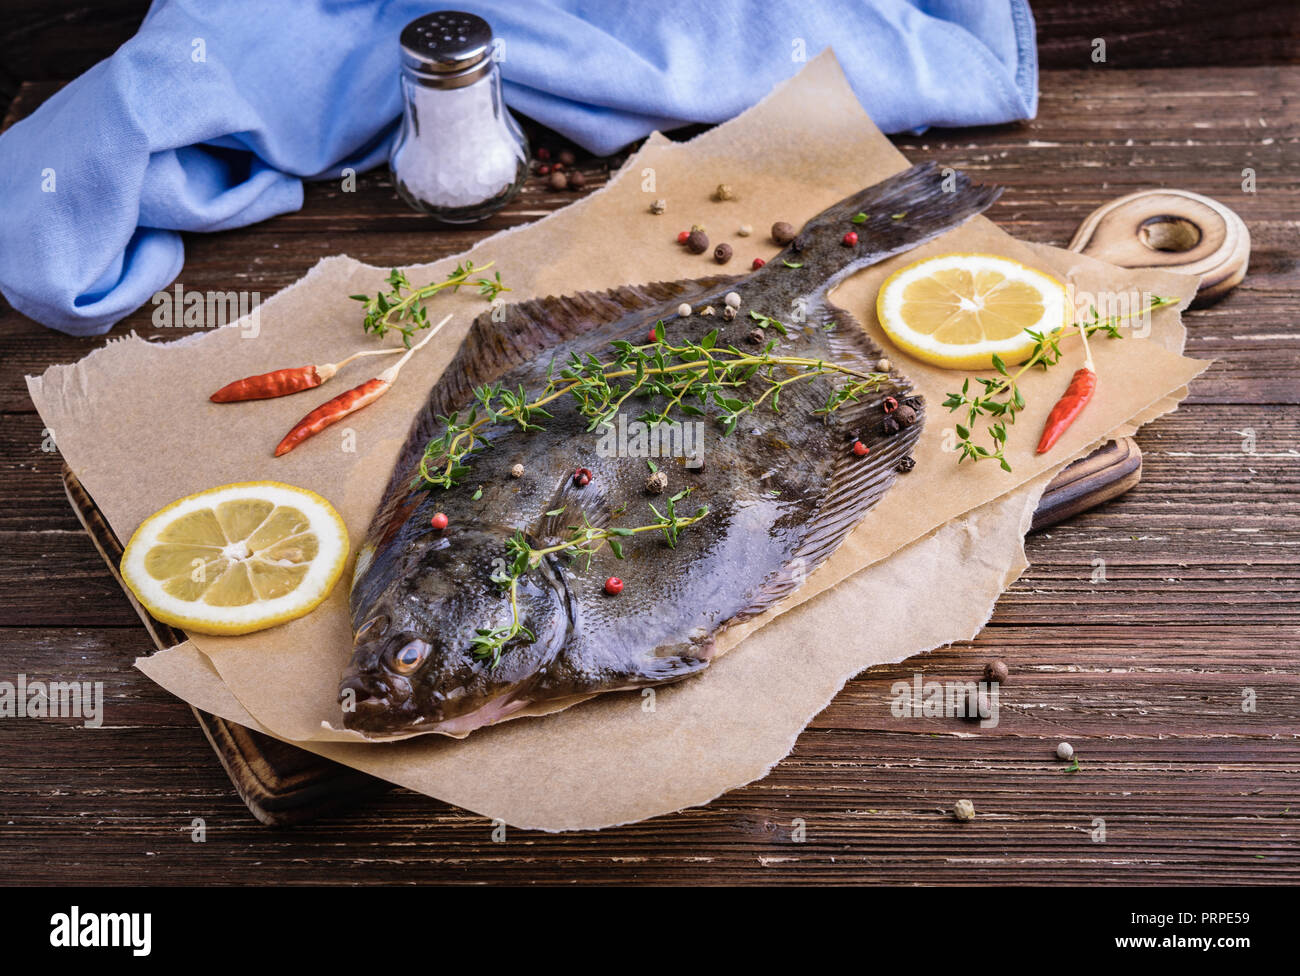 Raw flounder plaice fish (flatfish). Cooking process concept. Flounder fish with spices, lemon slices, thyme on parchment paper. Dark wooden table bac - Stock Image